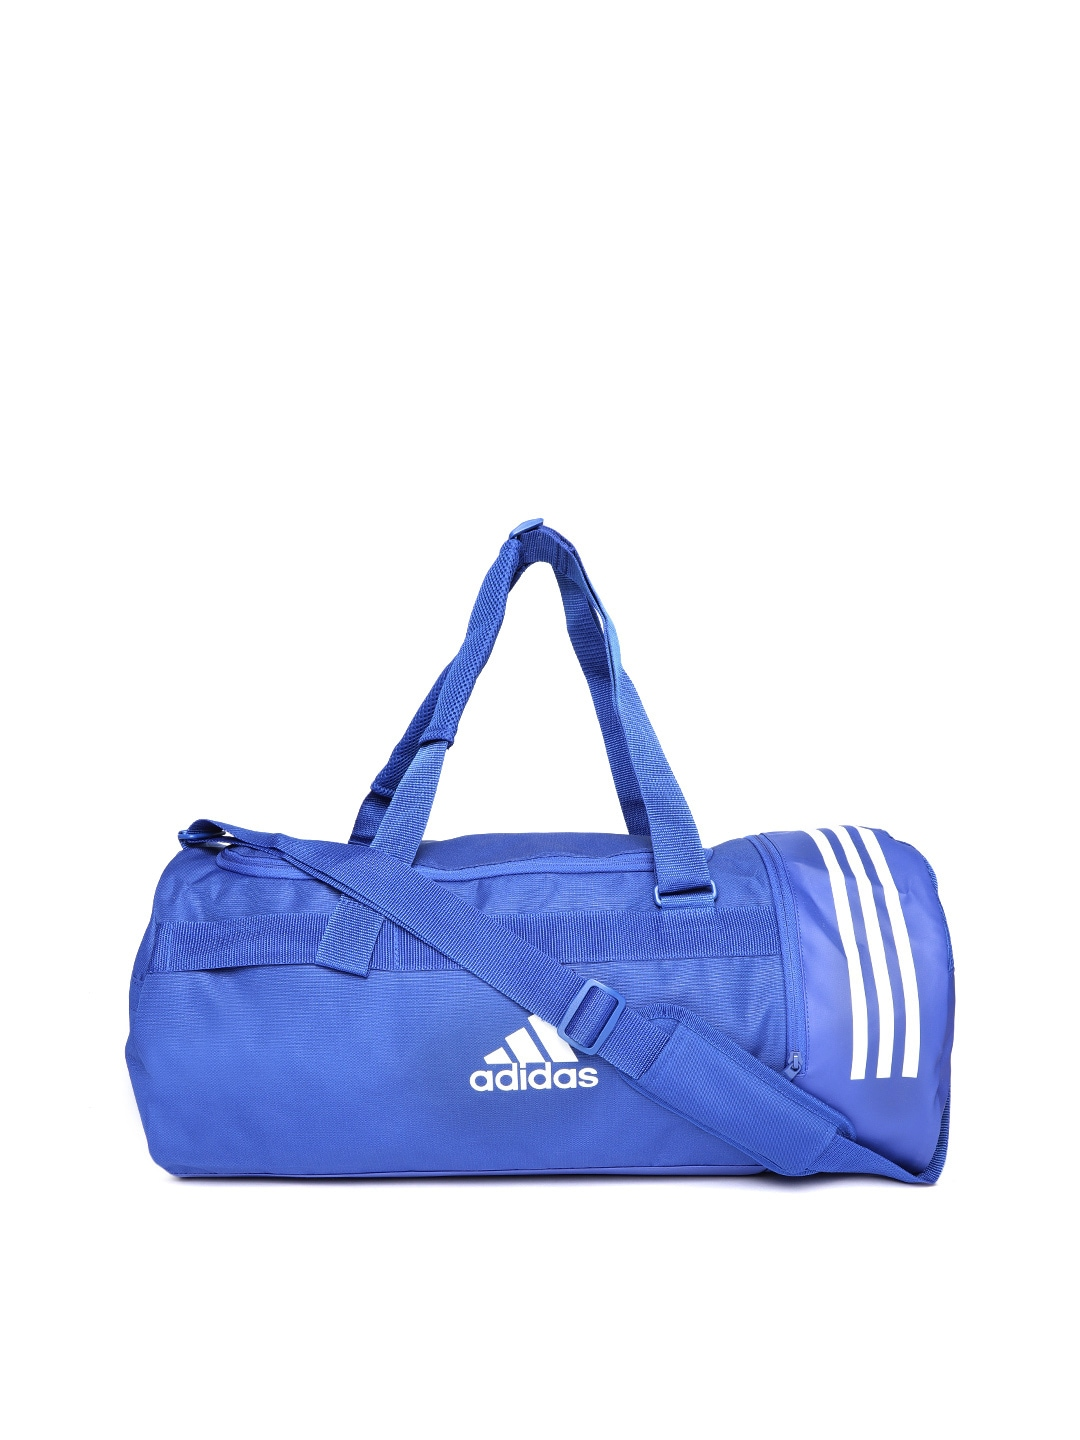 3467643f3559 Duffle Bags - Buy Branded Duffle Bags Online in India